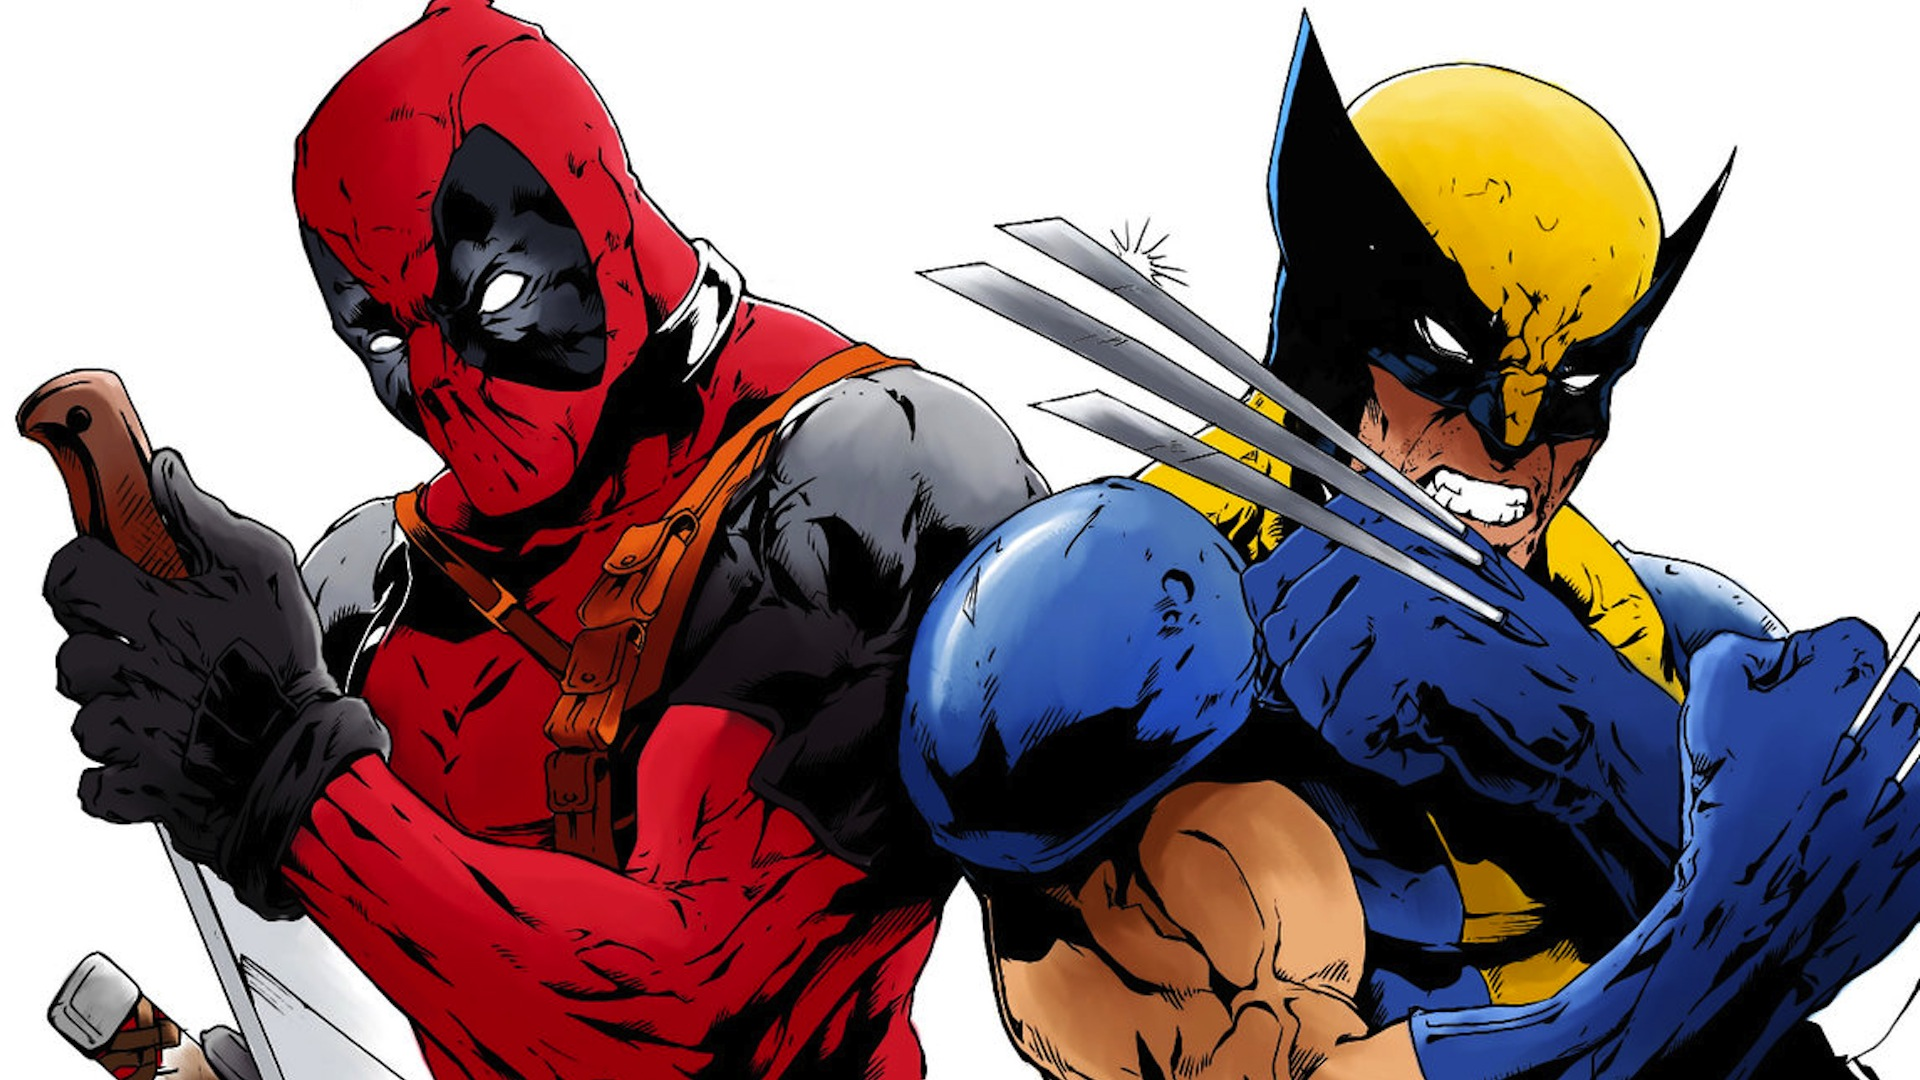 Deadpool vs. Wolverine. Now that's a film I would watch!